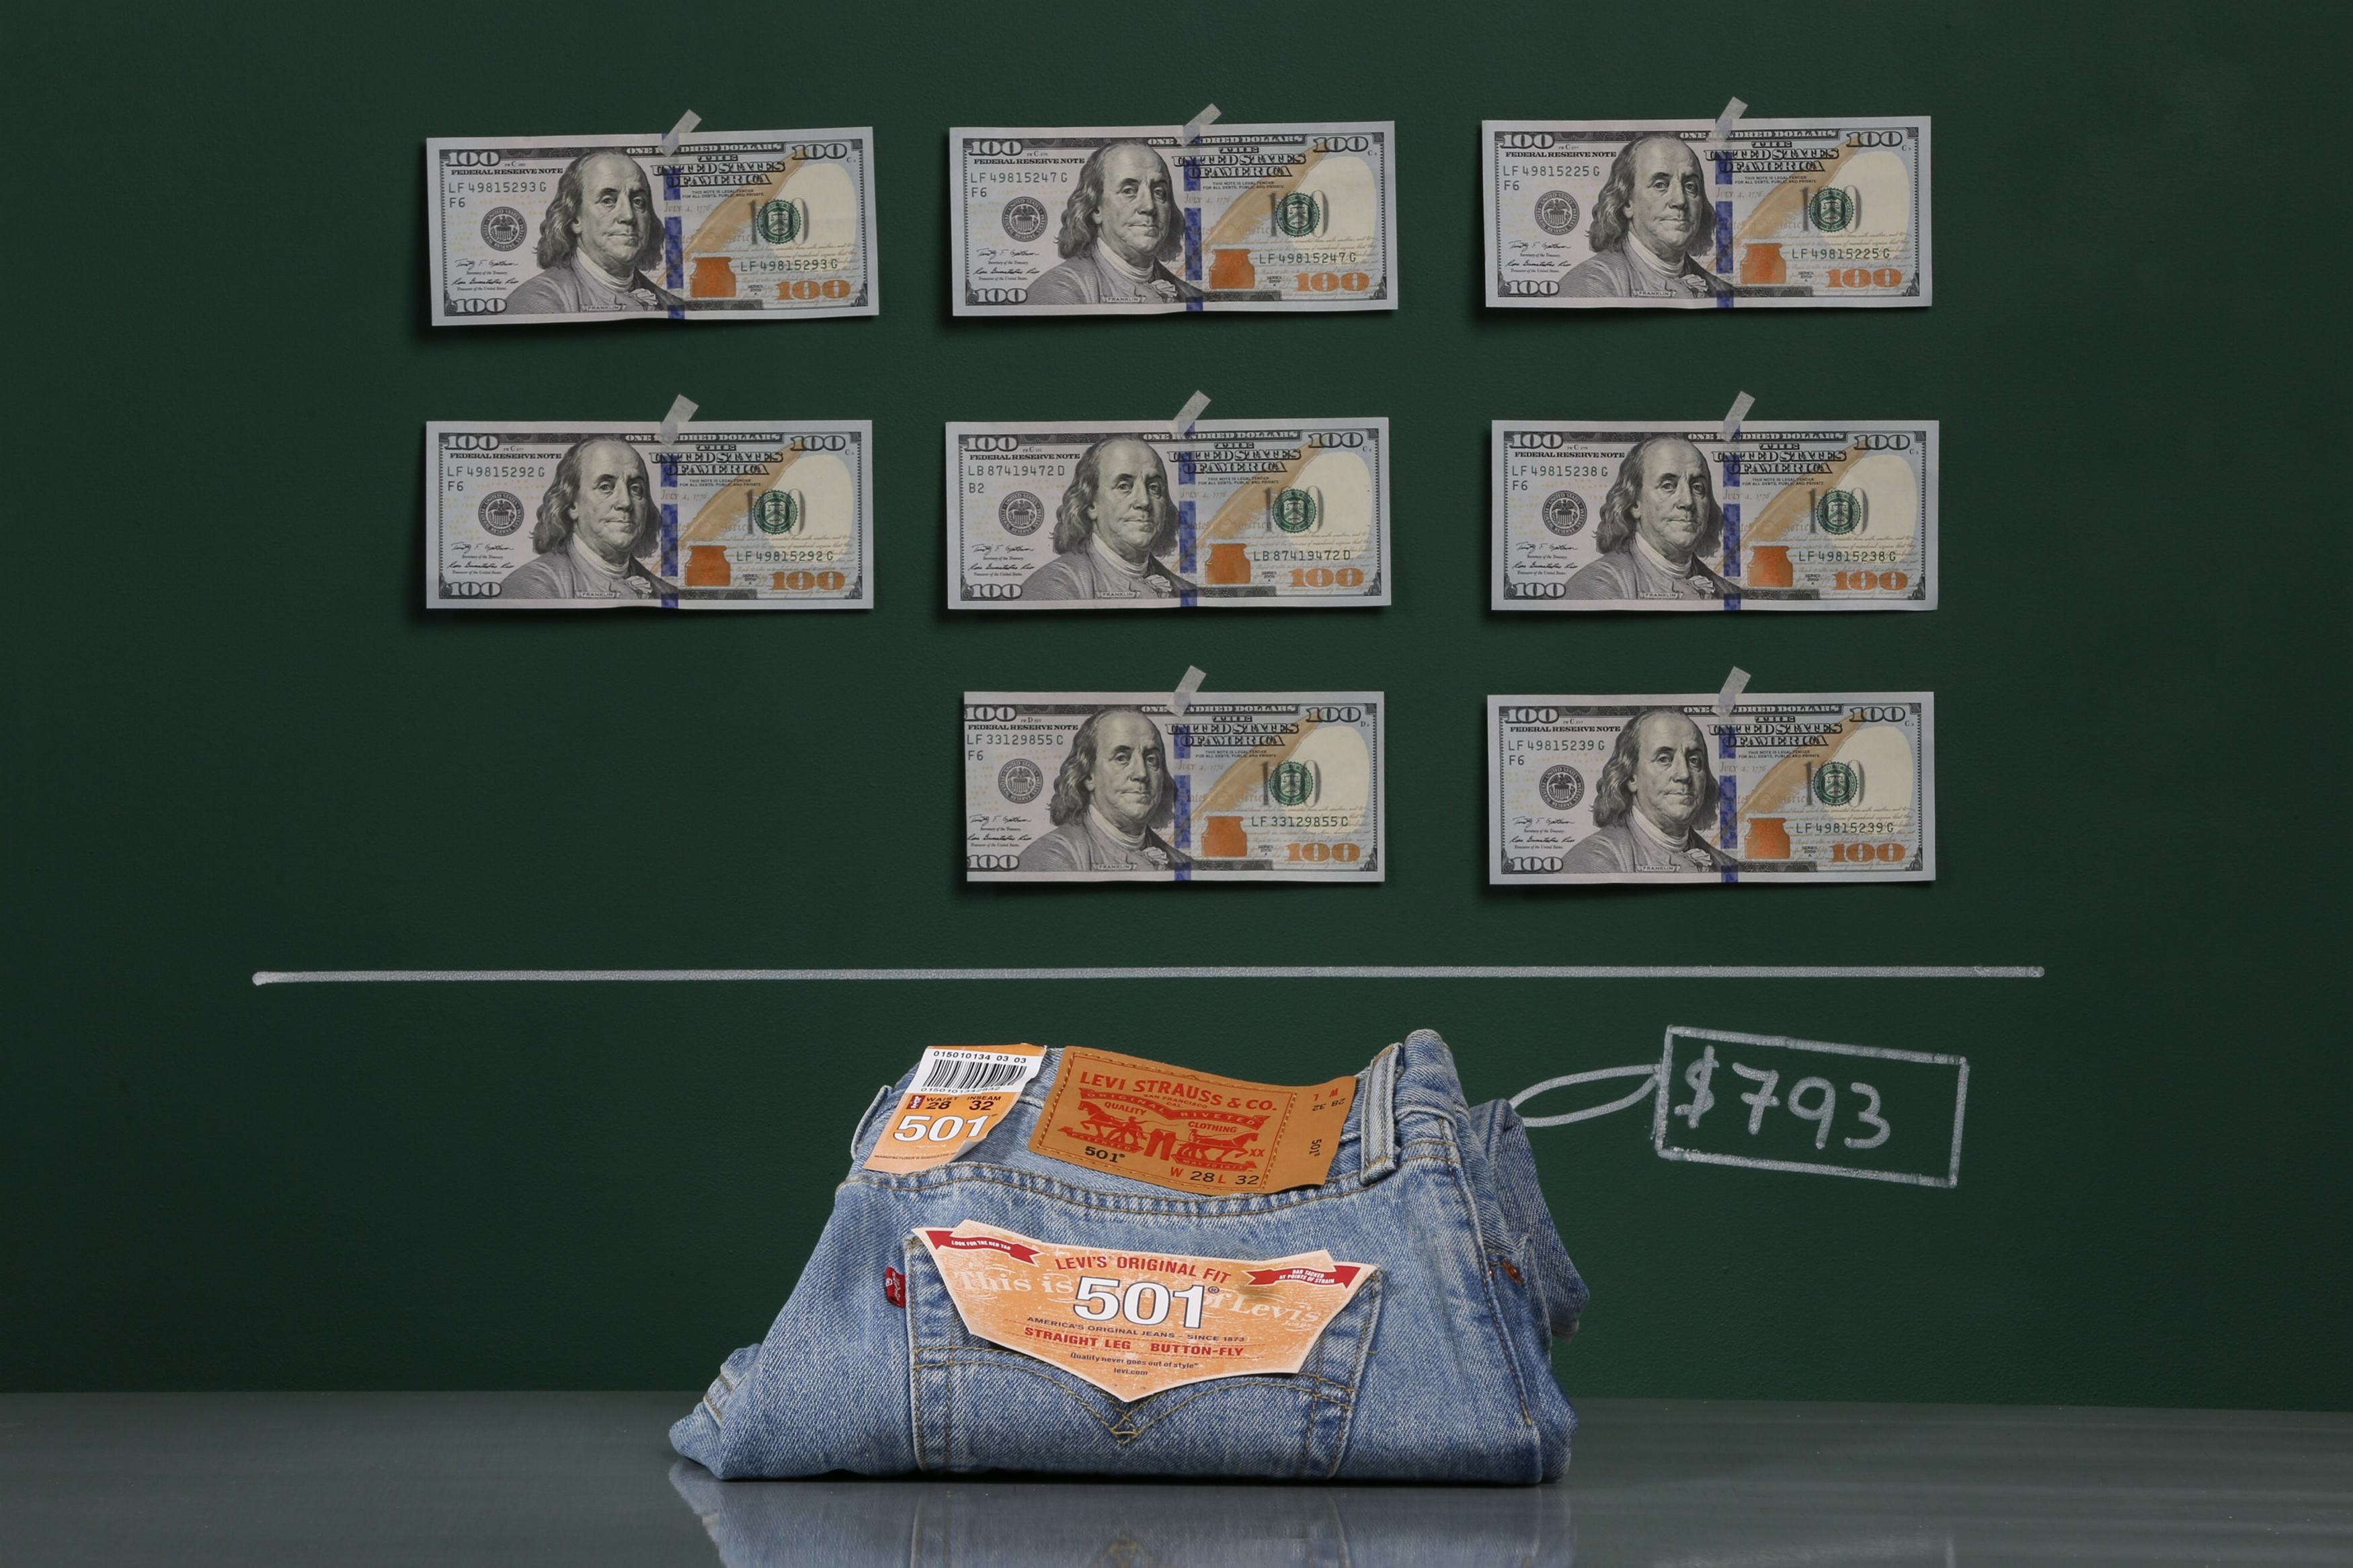 A pair of Levi's 501 jeans as photographed with an illustrative price tag of $793 in Caracas